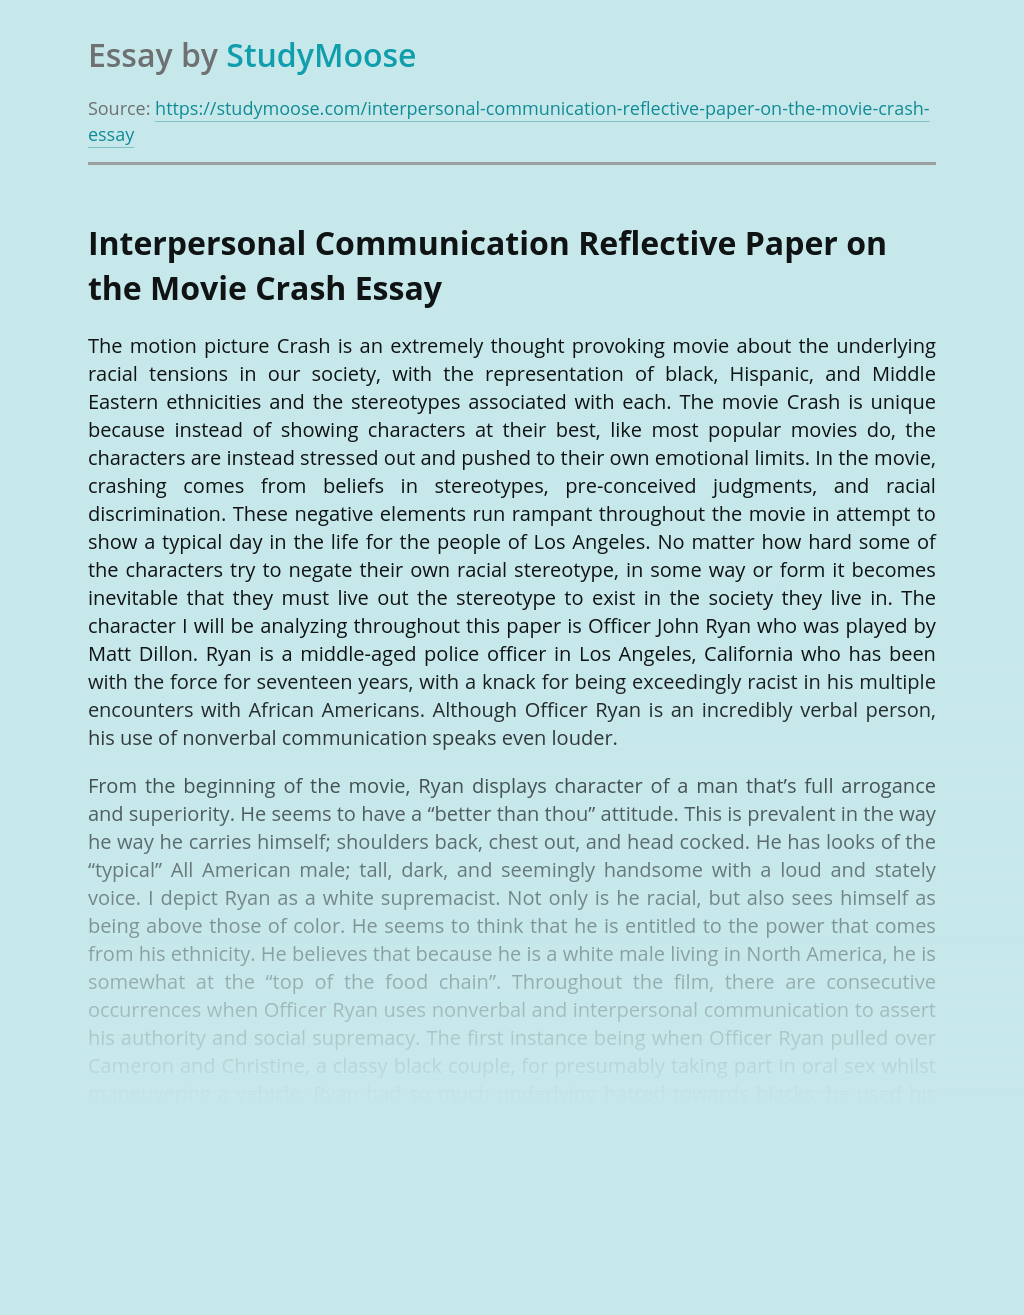 Interpersonal Communication Reflective Paper on the Movie Crash